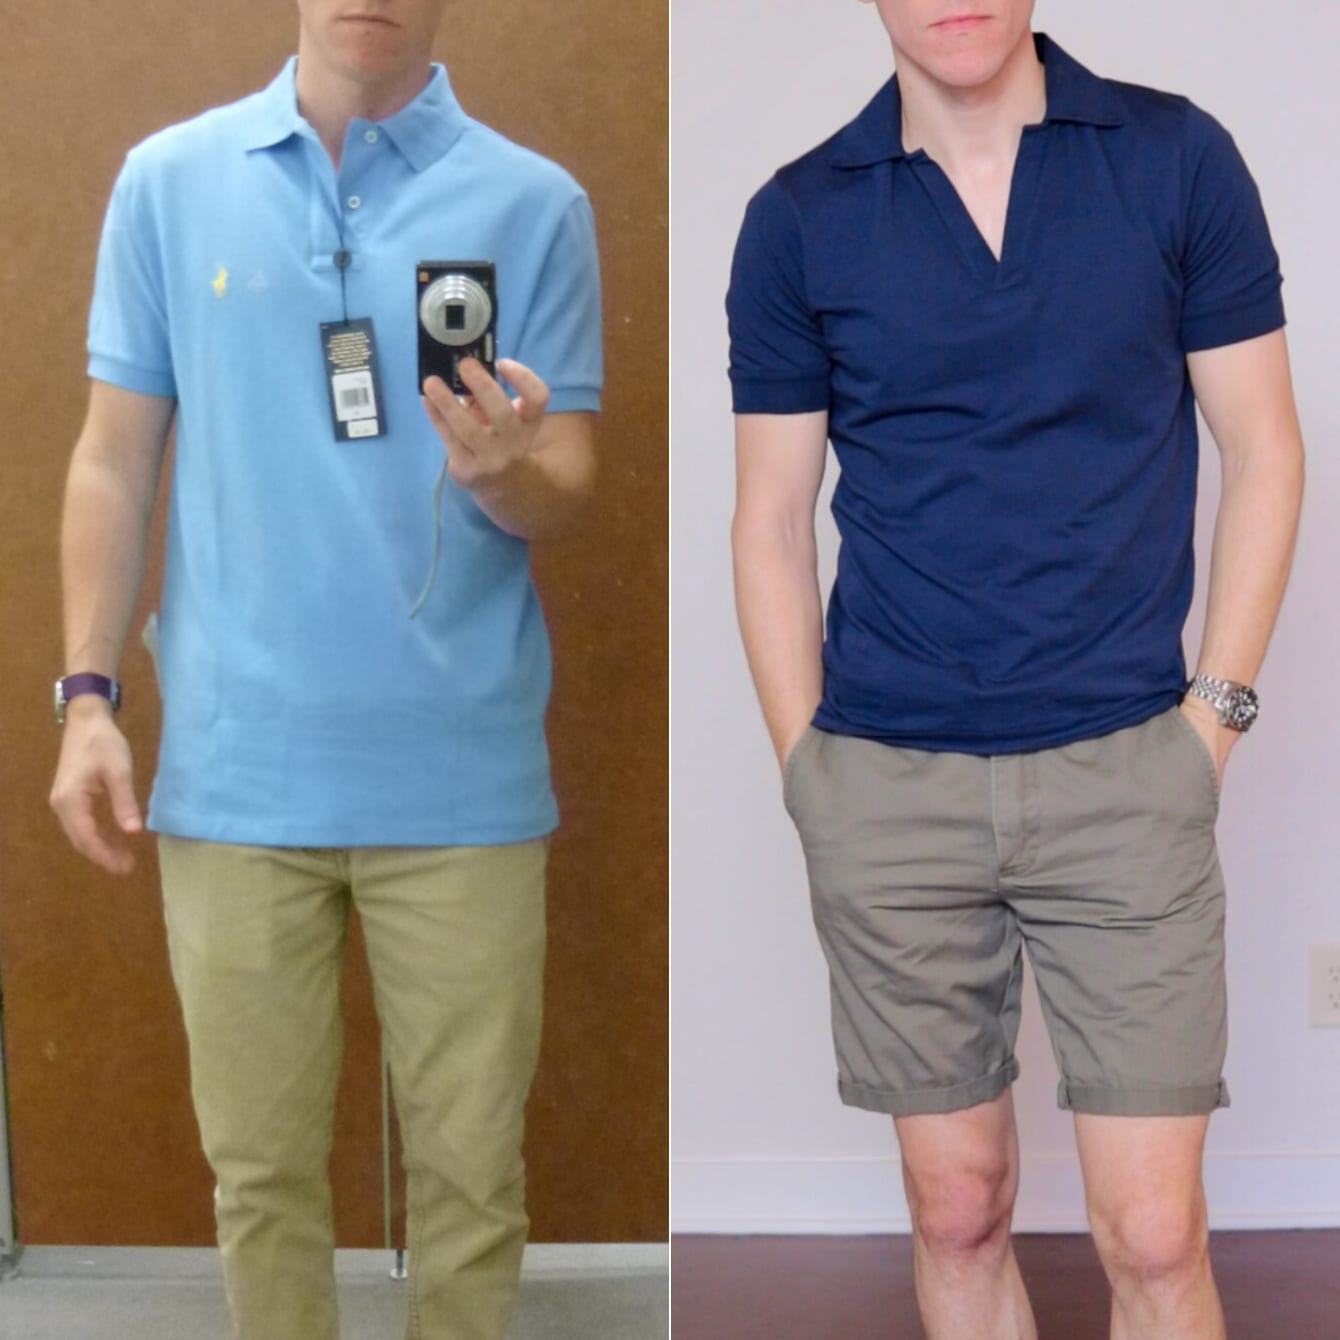 Bad vs. good fit polo